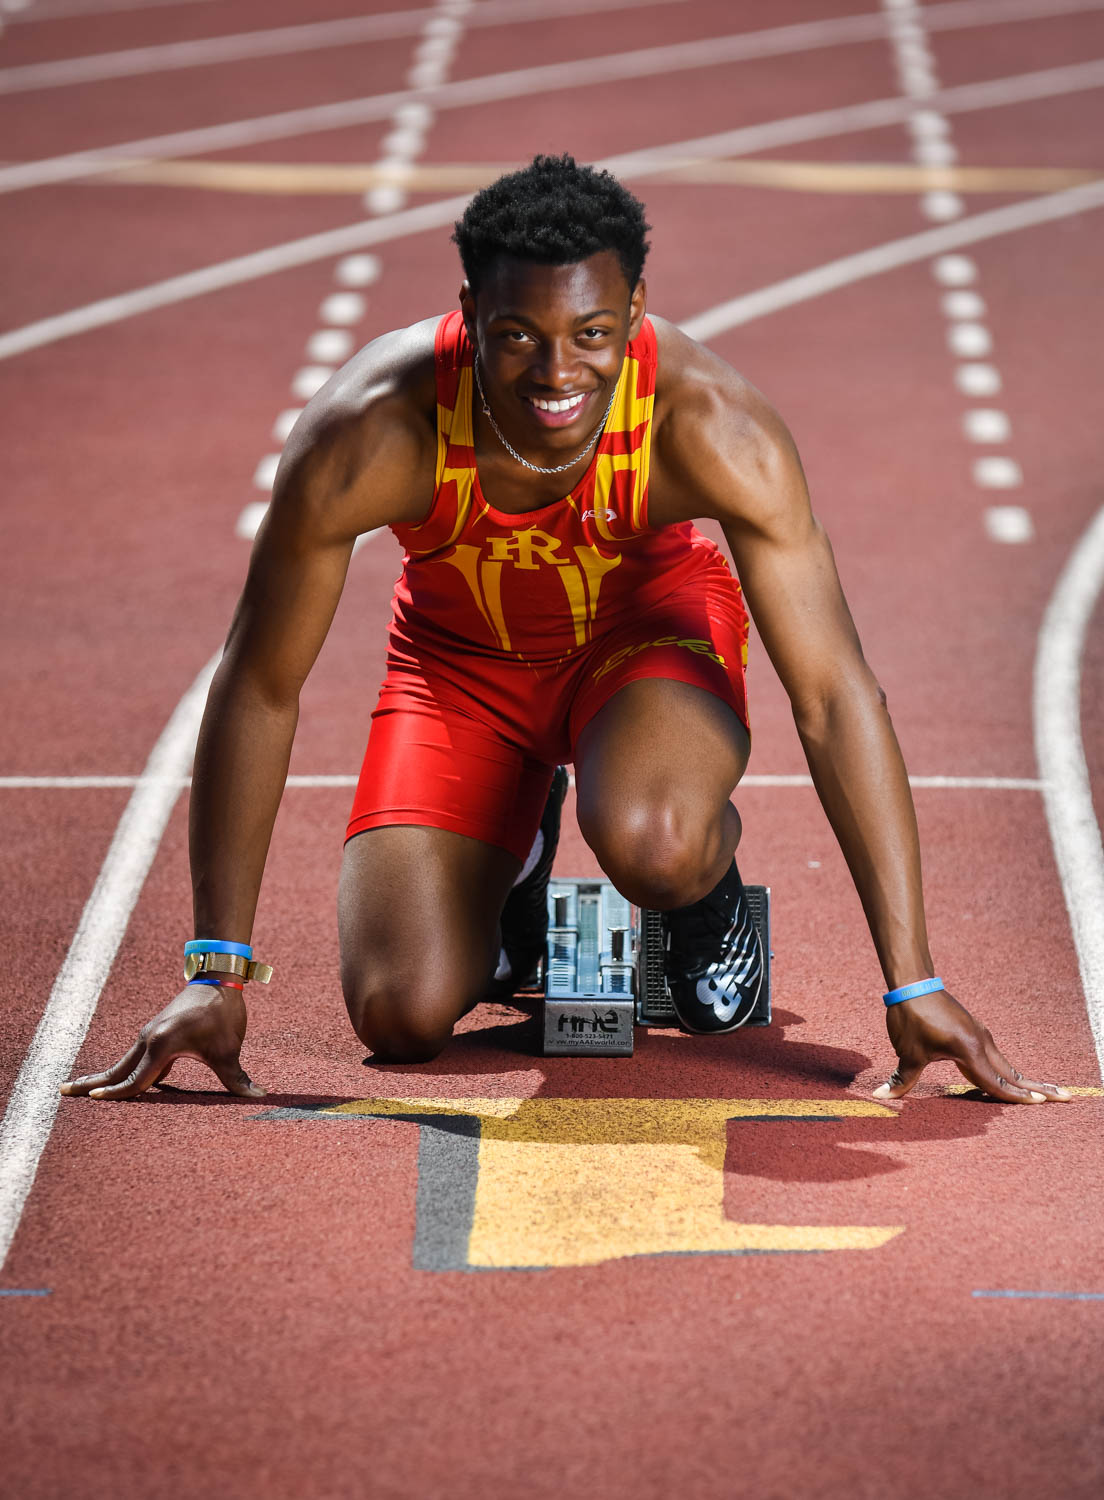 Rock Island track star Courtney Lindsey. (Todd Mizener - Dispatch/Argus)